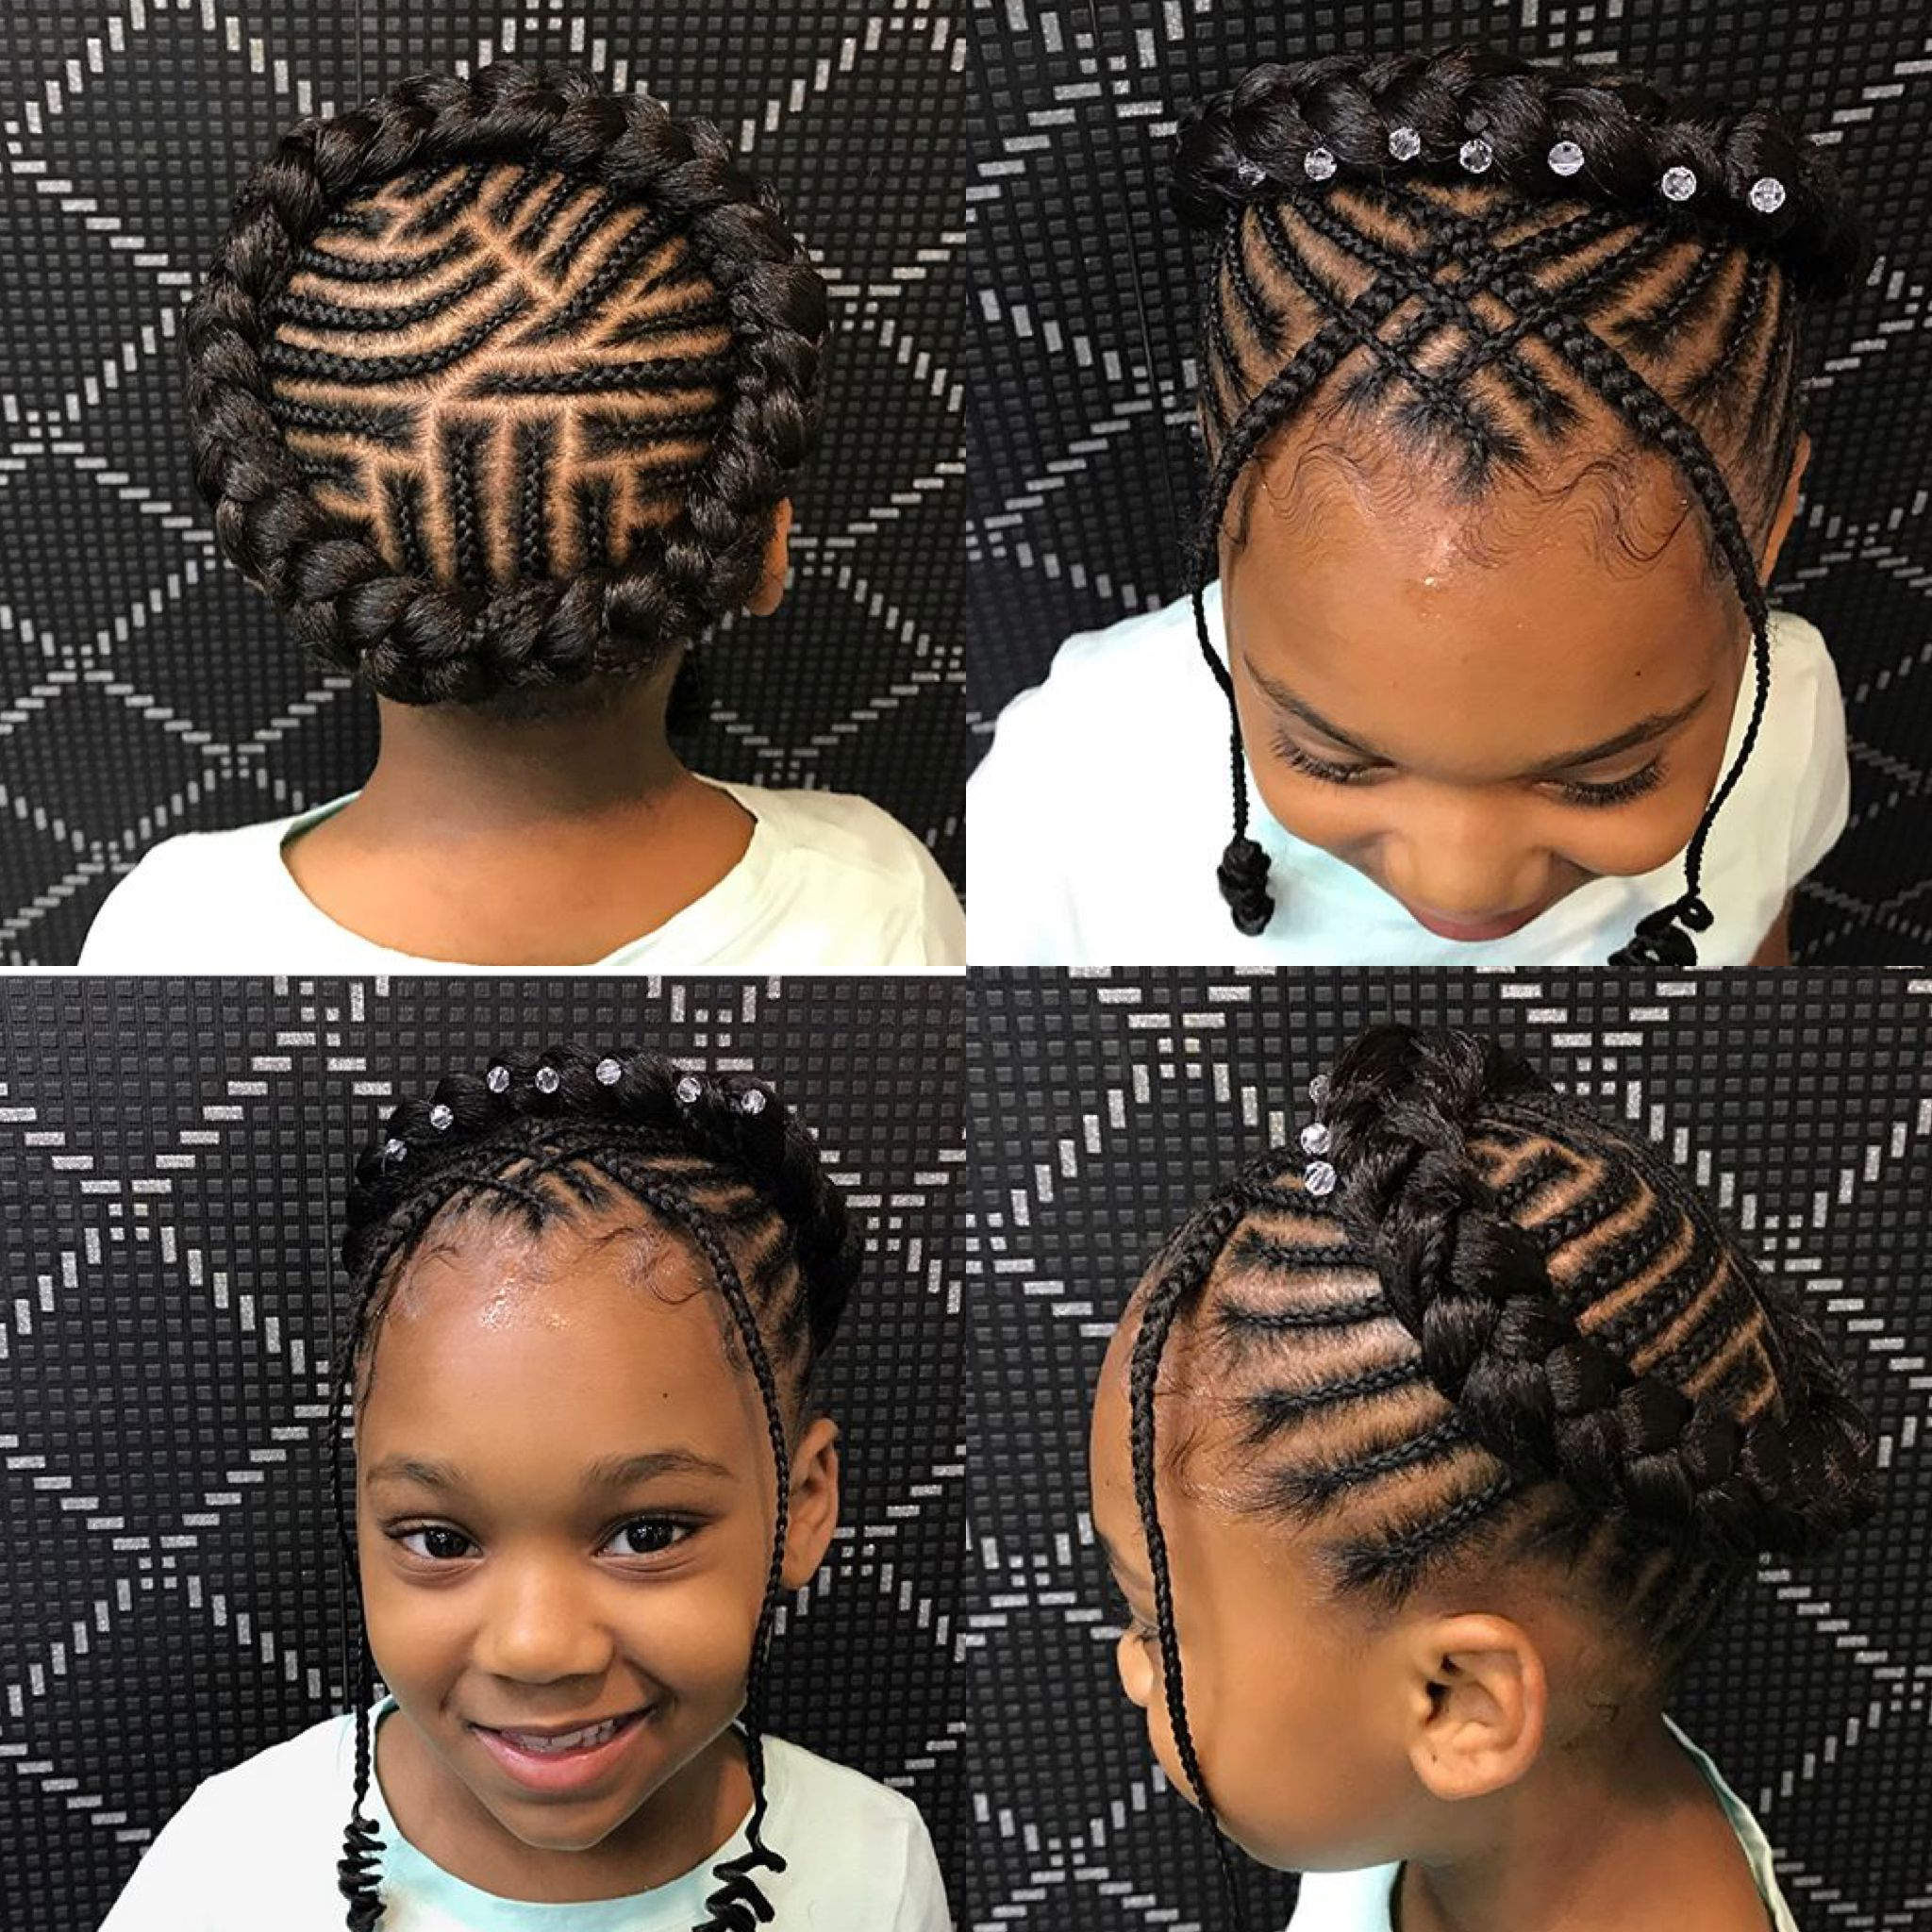 Kids Hair With Regard To 2019 Halo Braided Hairstyles With Beads (View 13 of 20)